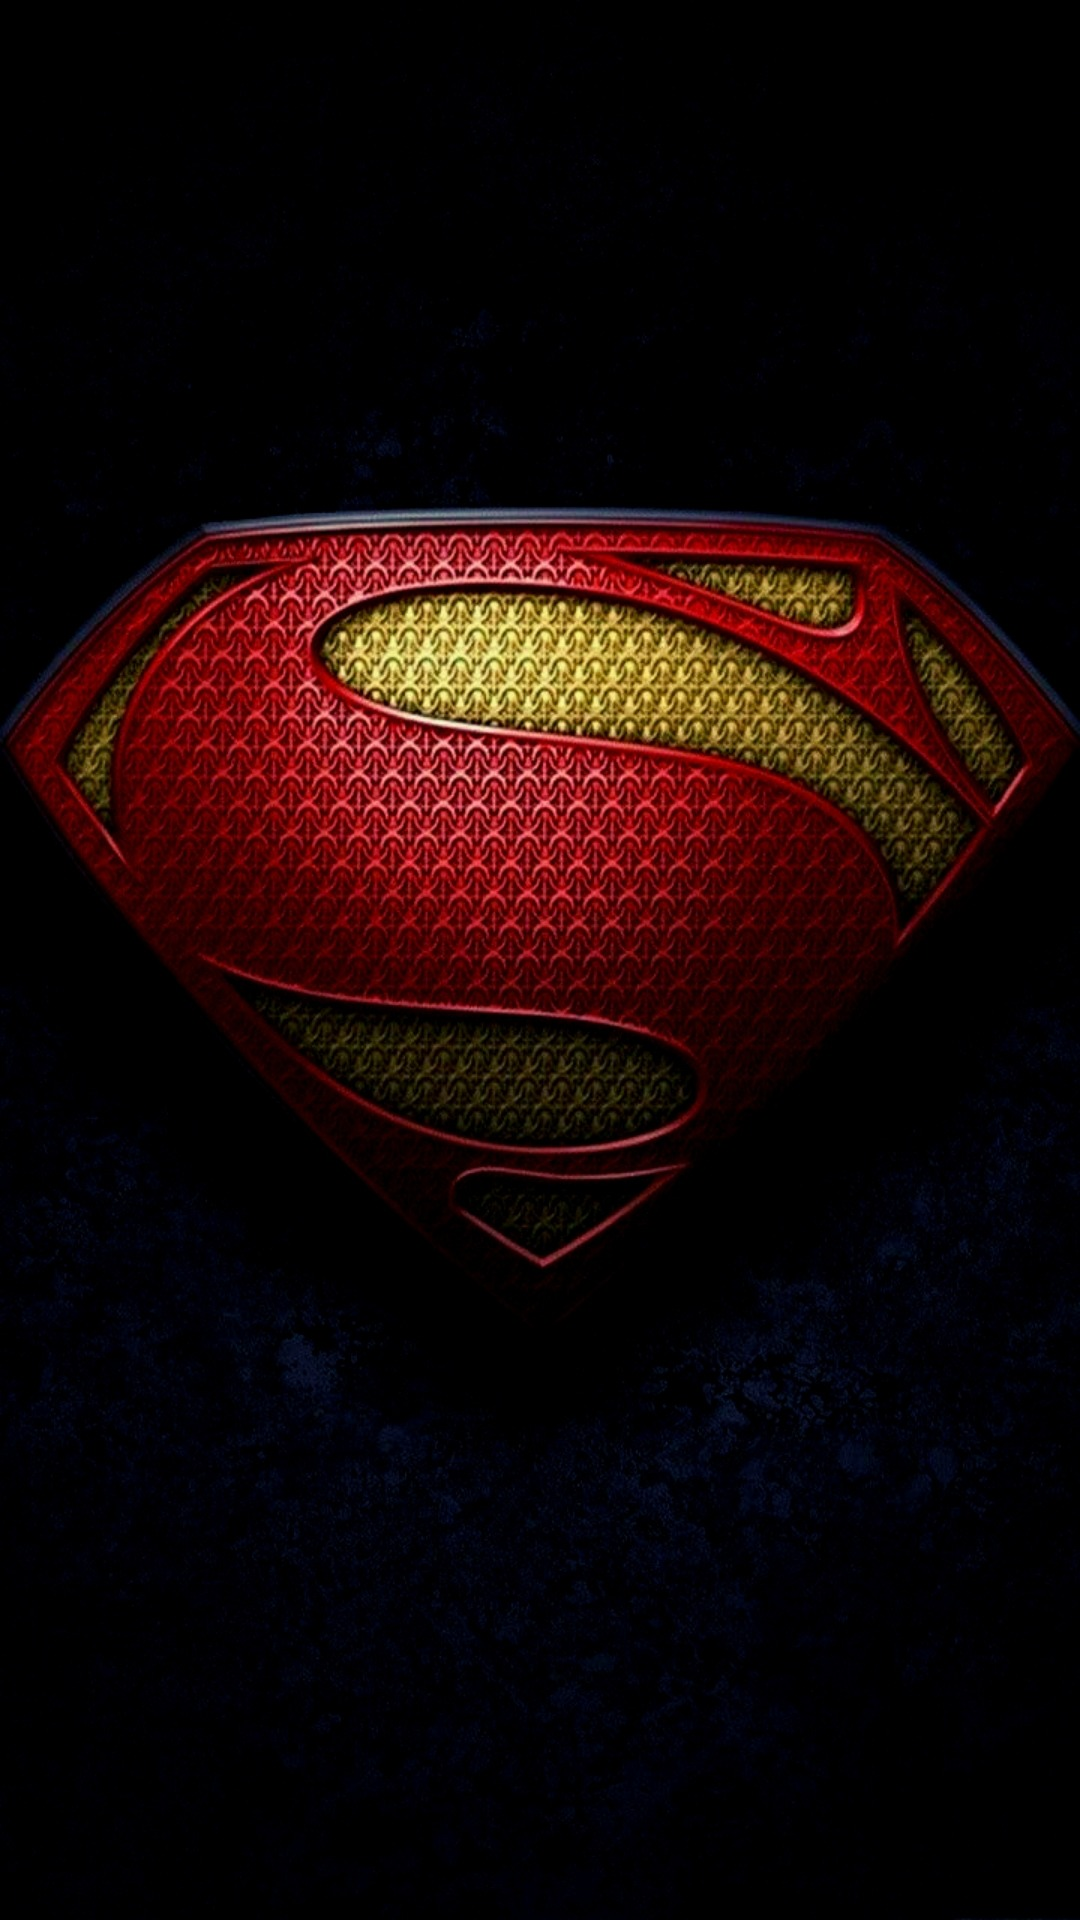 Superman hd wallpaper for iphone xr